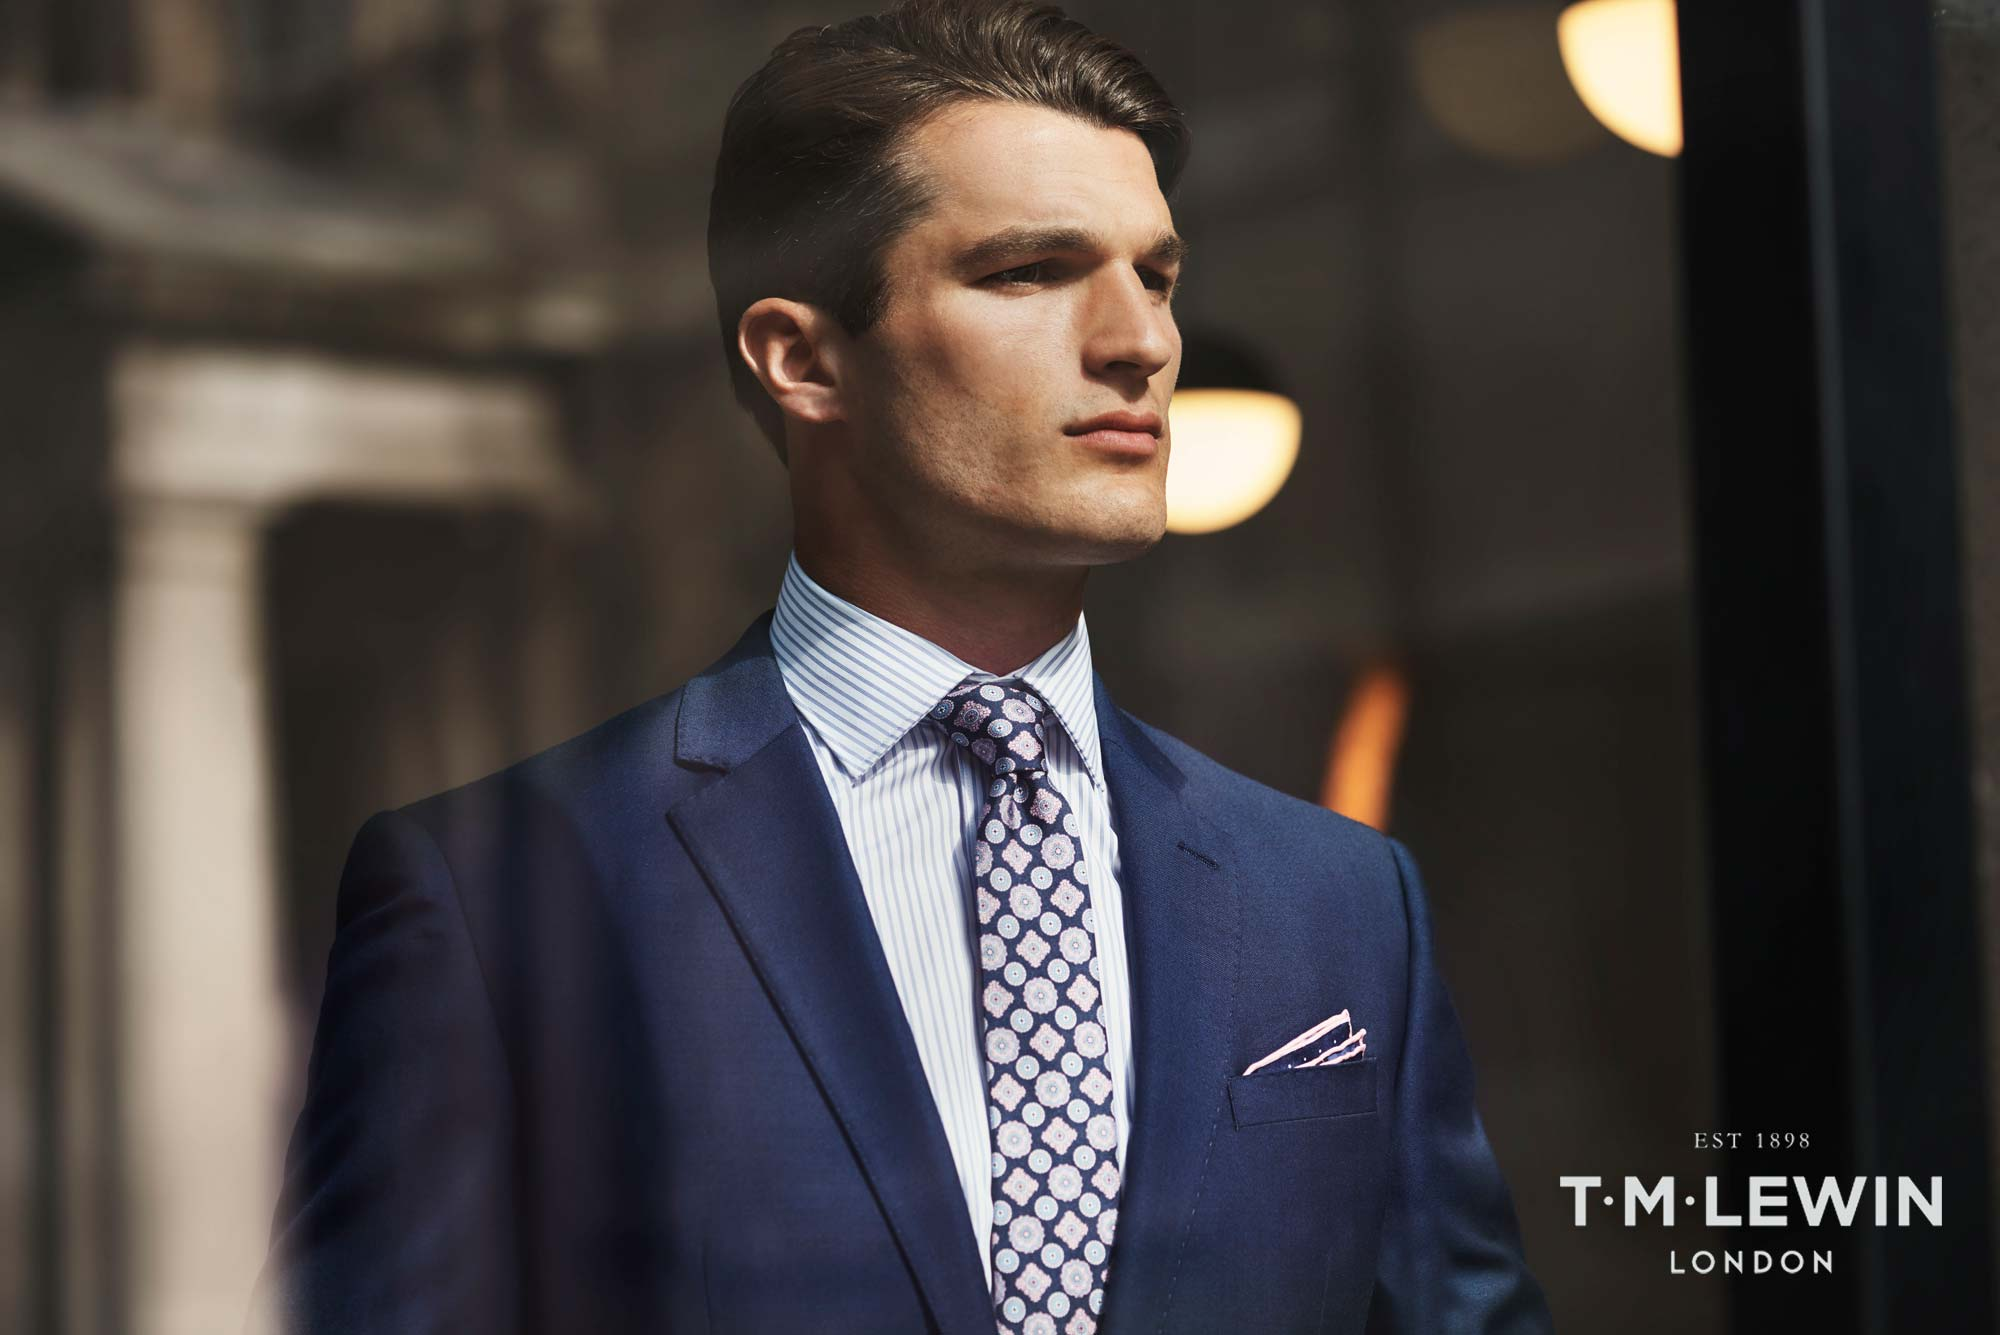 Shirts sales and vouchers codes – updated December 2nd Looking for information on shirts sales and vouchers? The information below gives the latest on TM Lewin voucher codes, Charles Tyrwhitt sales and other shirt retailers' discounts and promo codes.